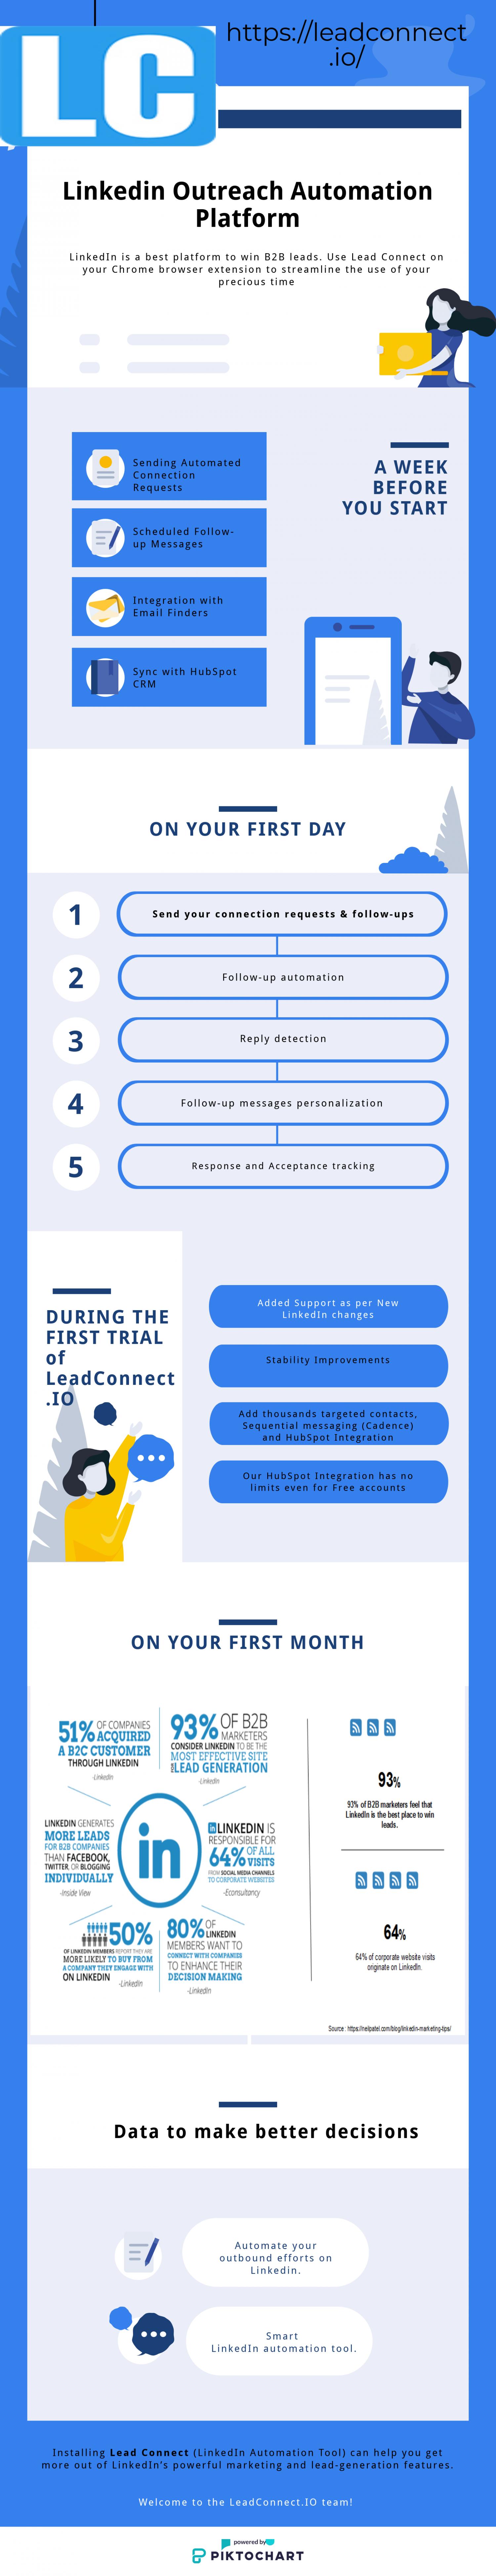 Linkedin Automation Tool - LeadConnect Infographic